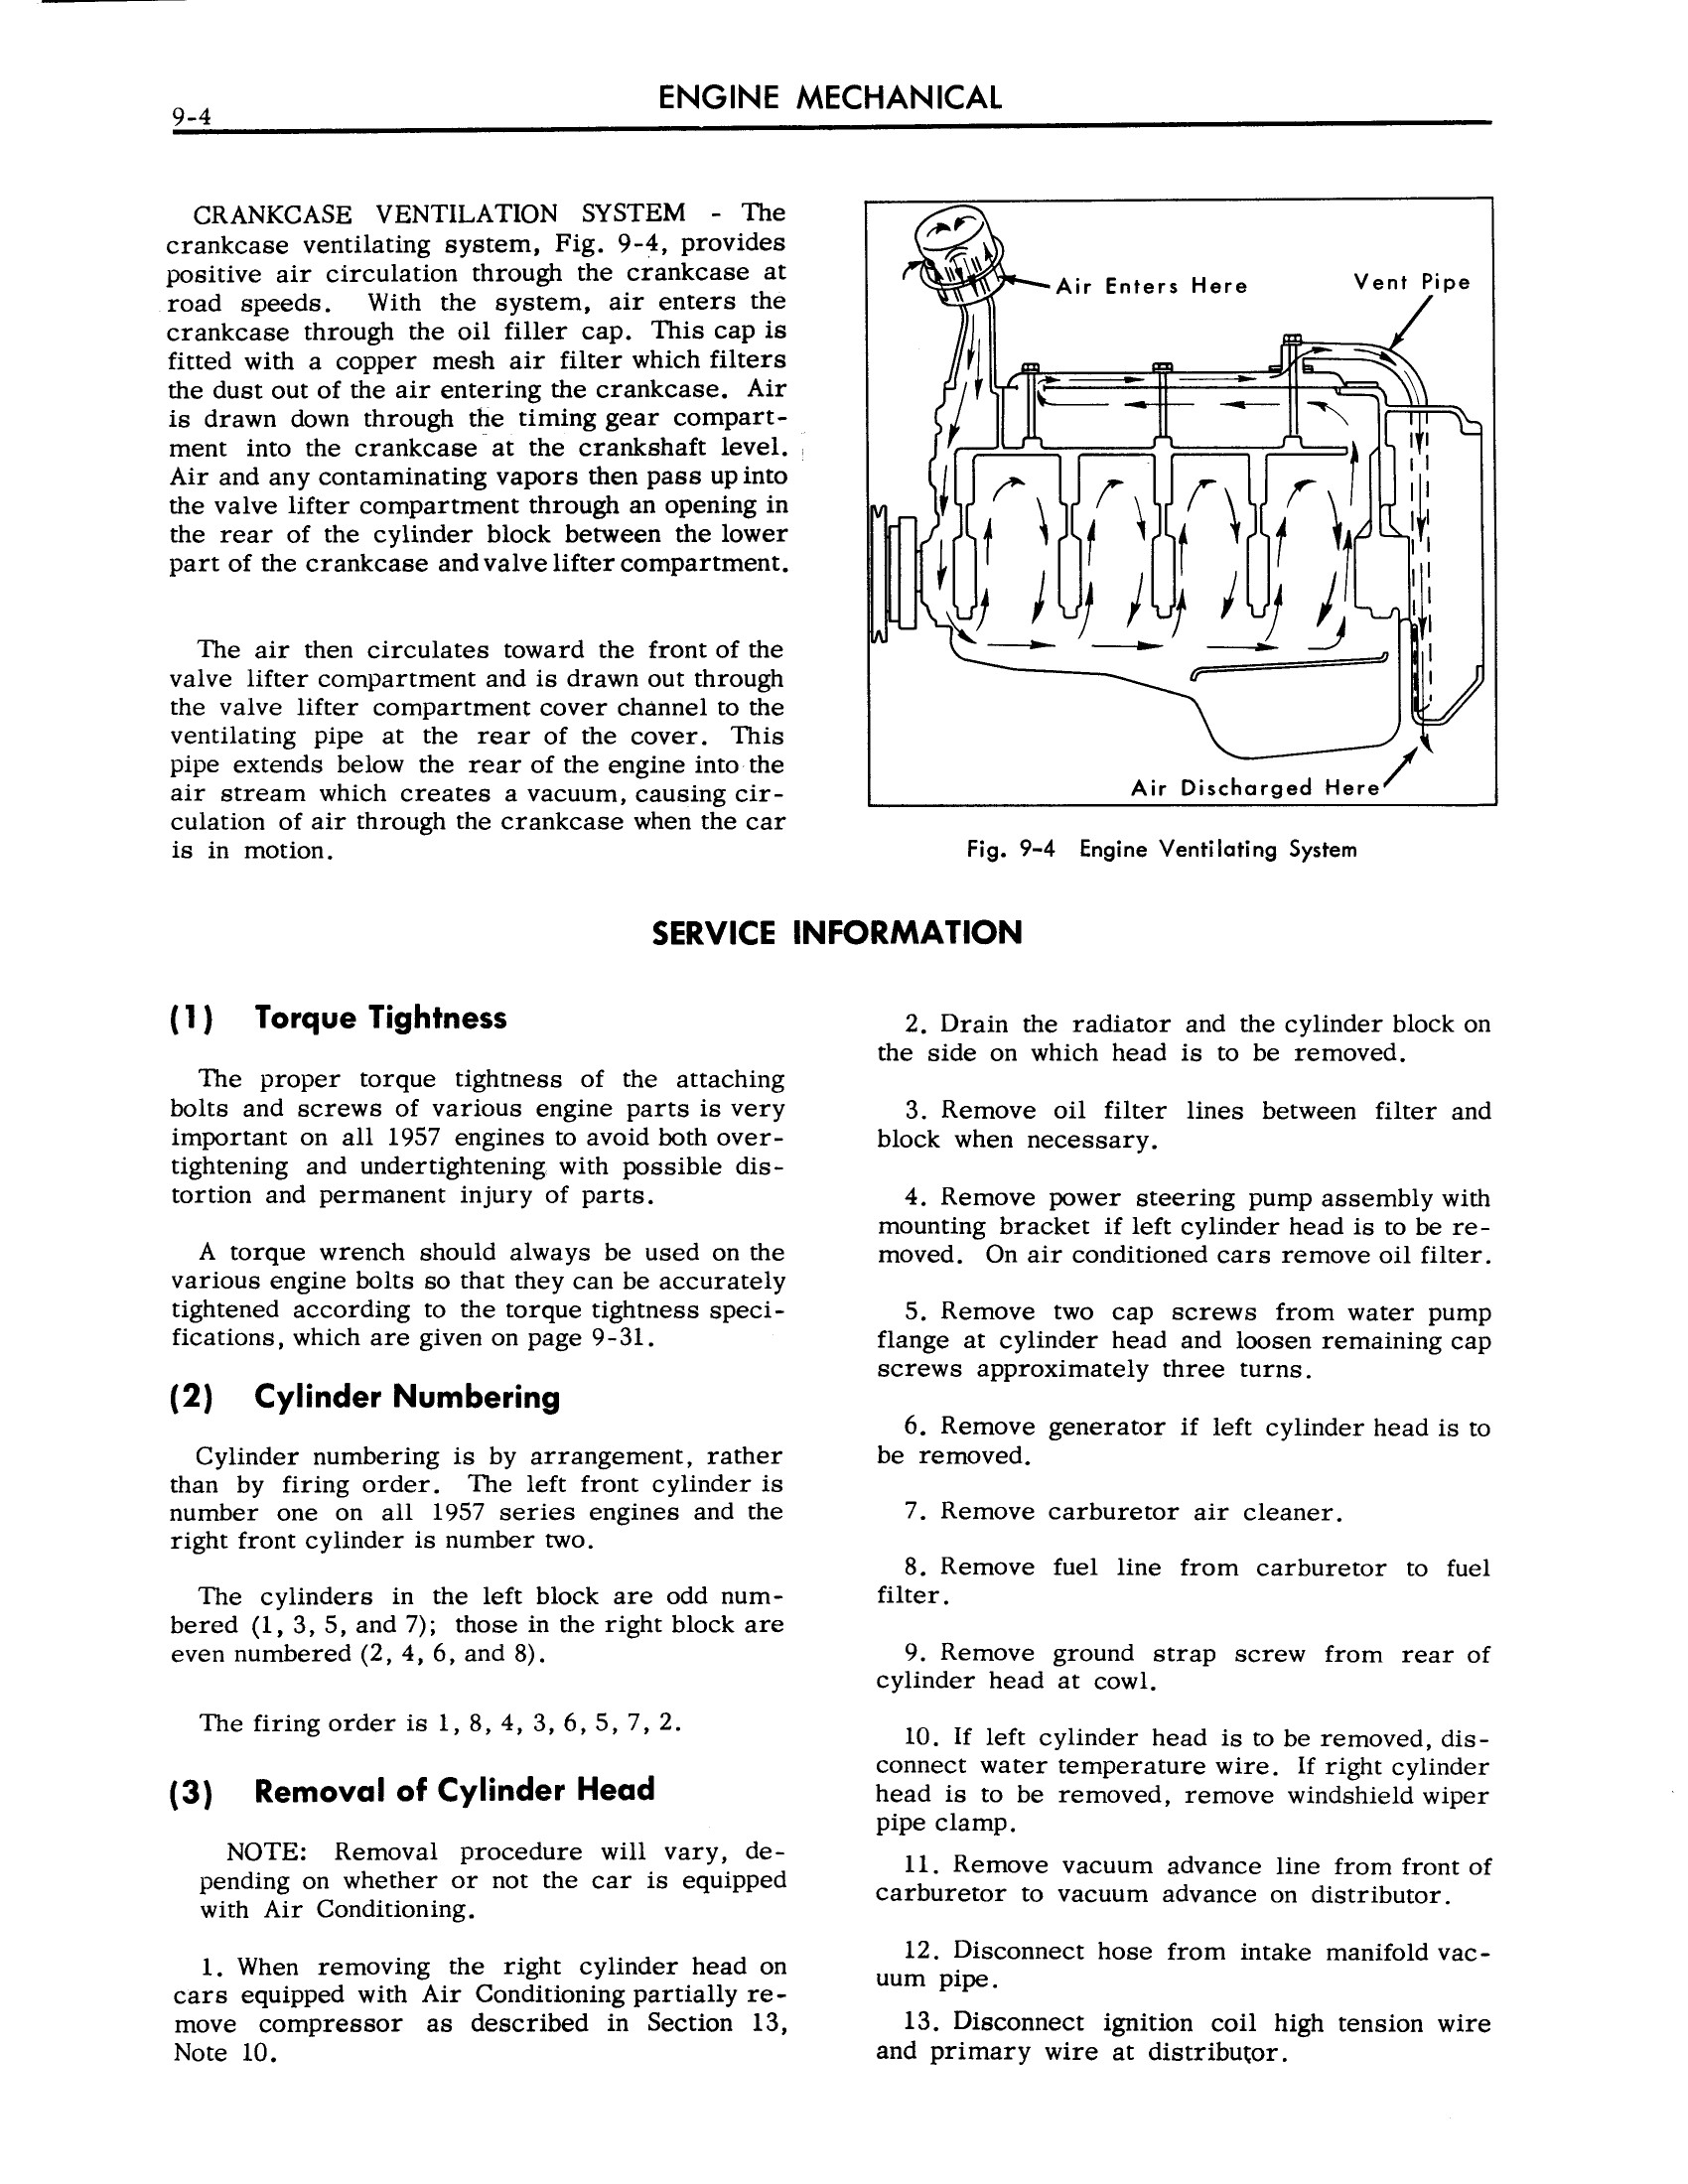 1957 Cadillac Shop Manual- Engine Mechanical Page 4 of 32